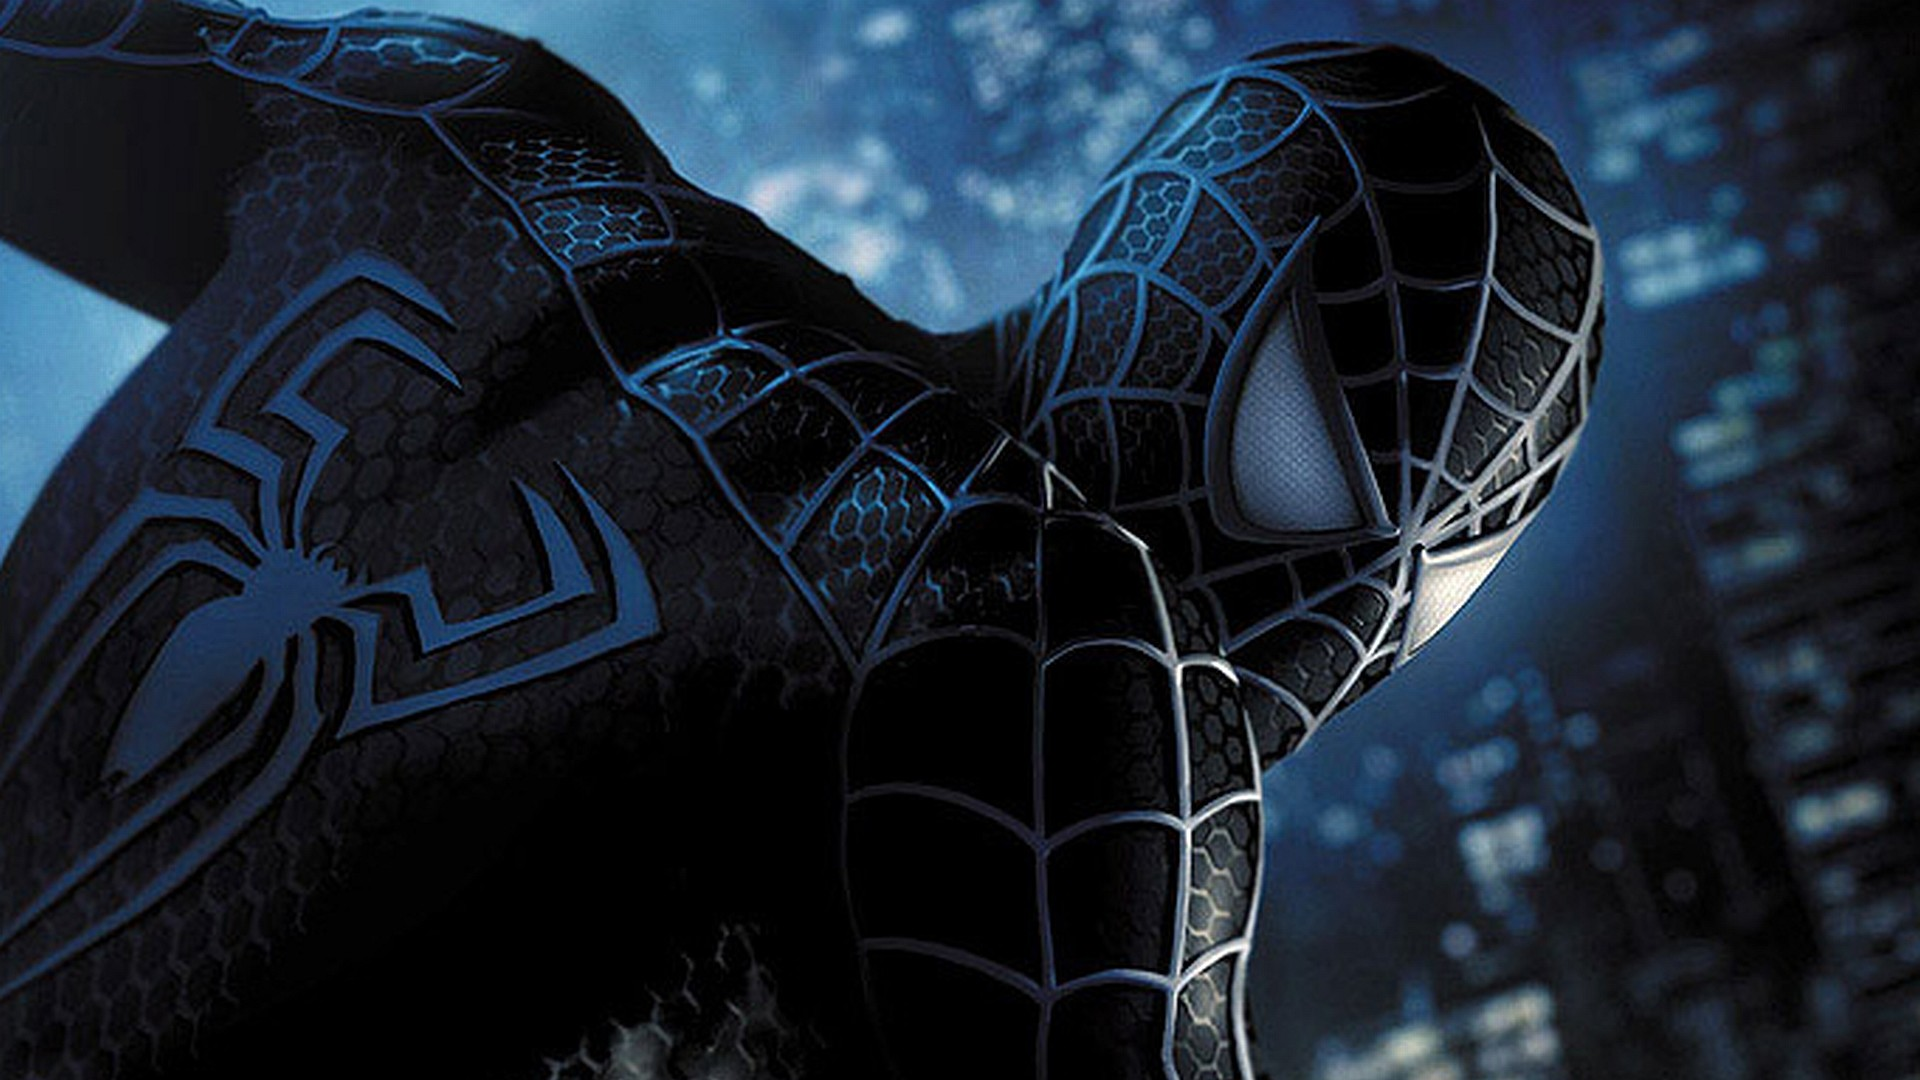 Cool Spiderman Wallpaper for Iphone 6s & Iphone 6s Plus